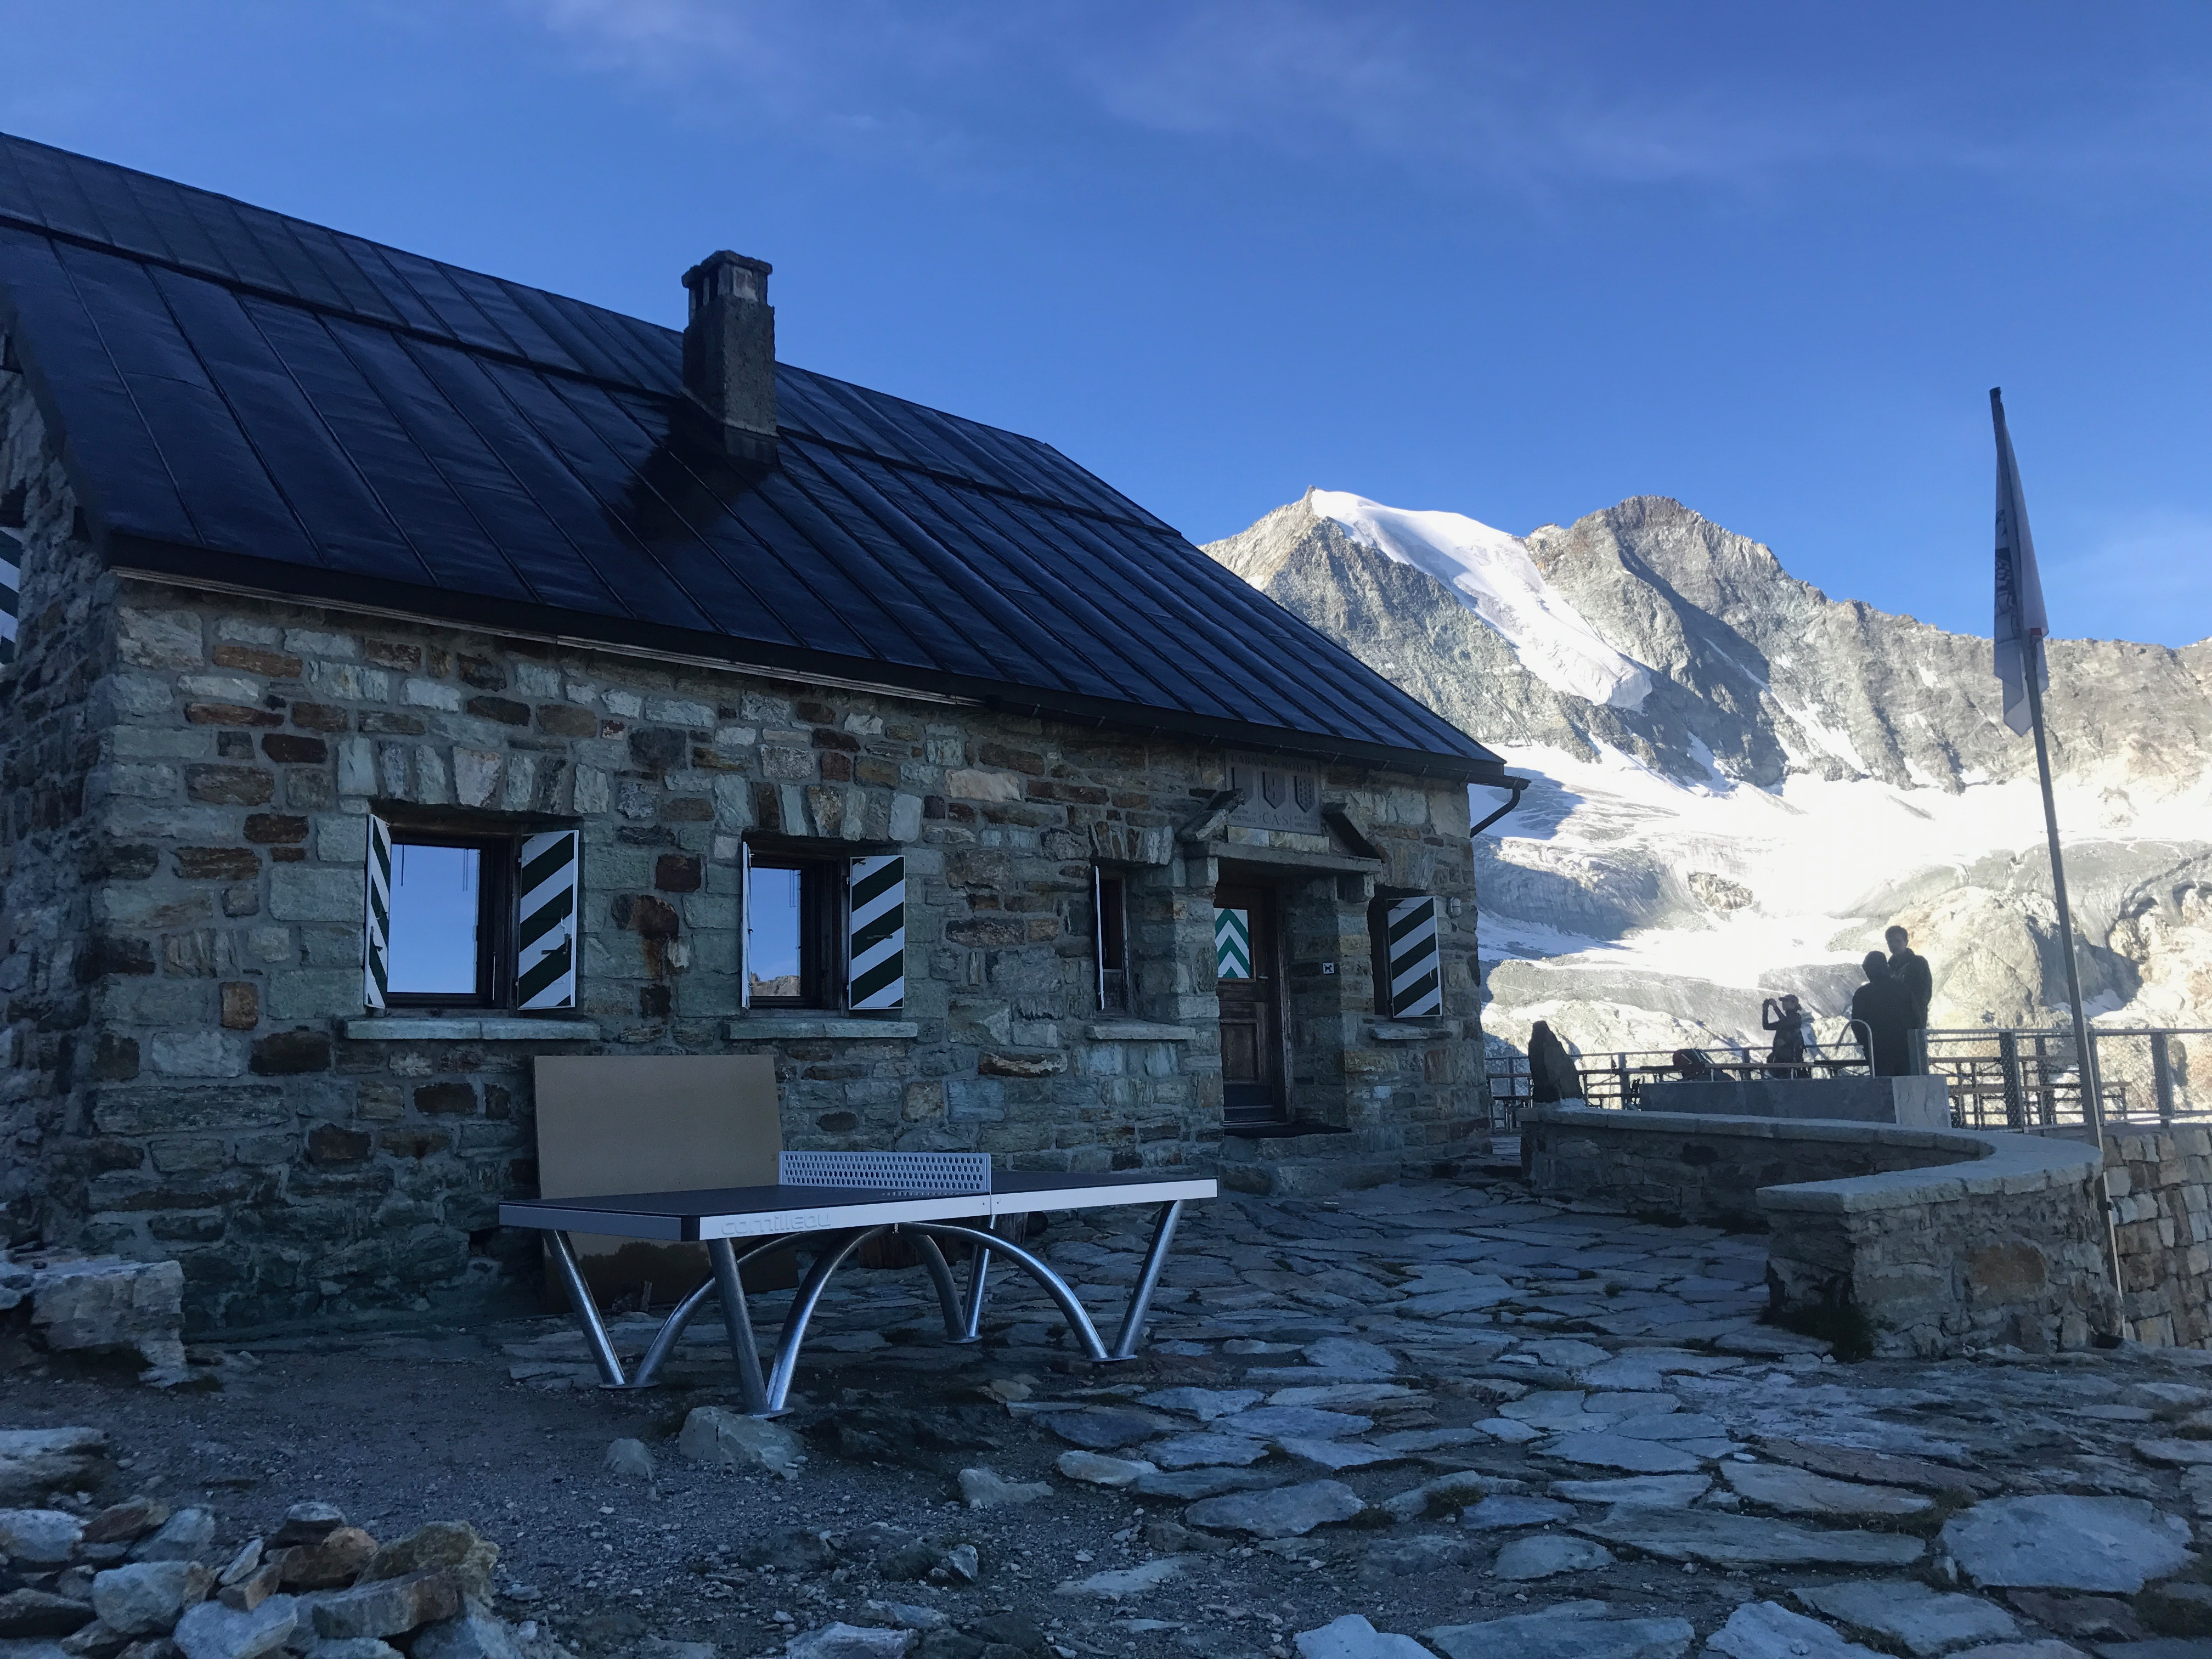 Mountain huts on the Haute Route